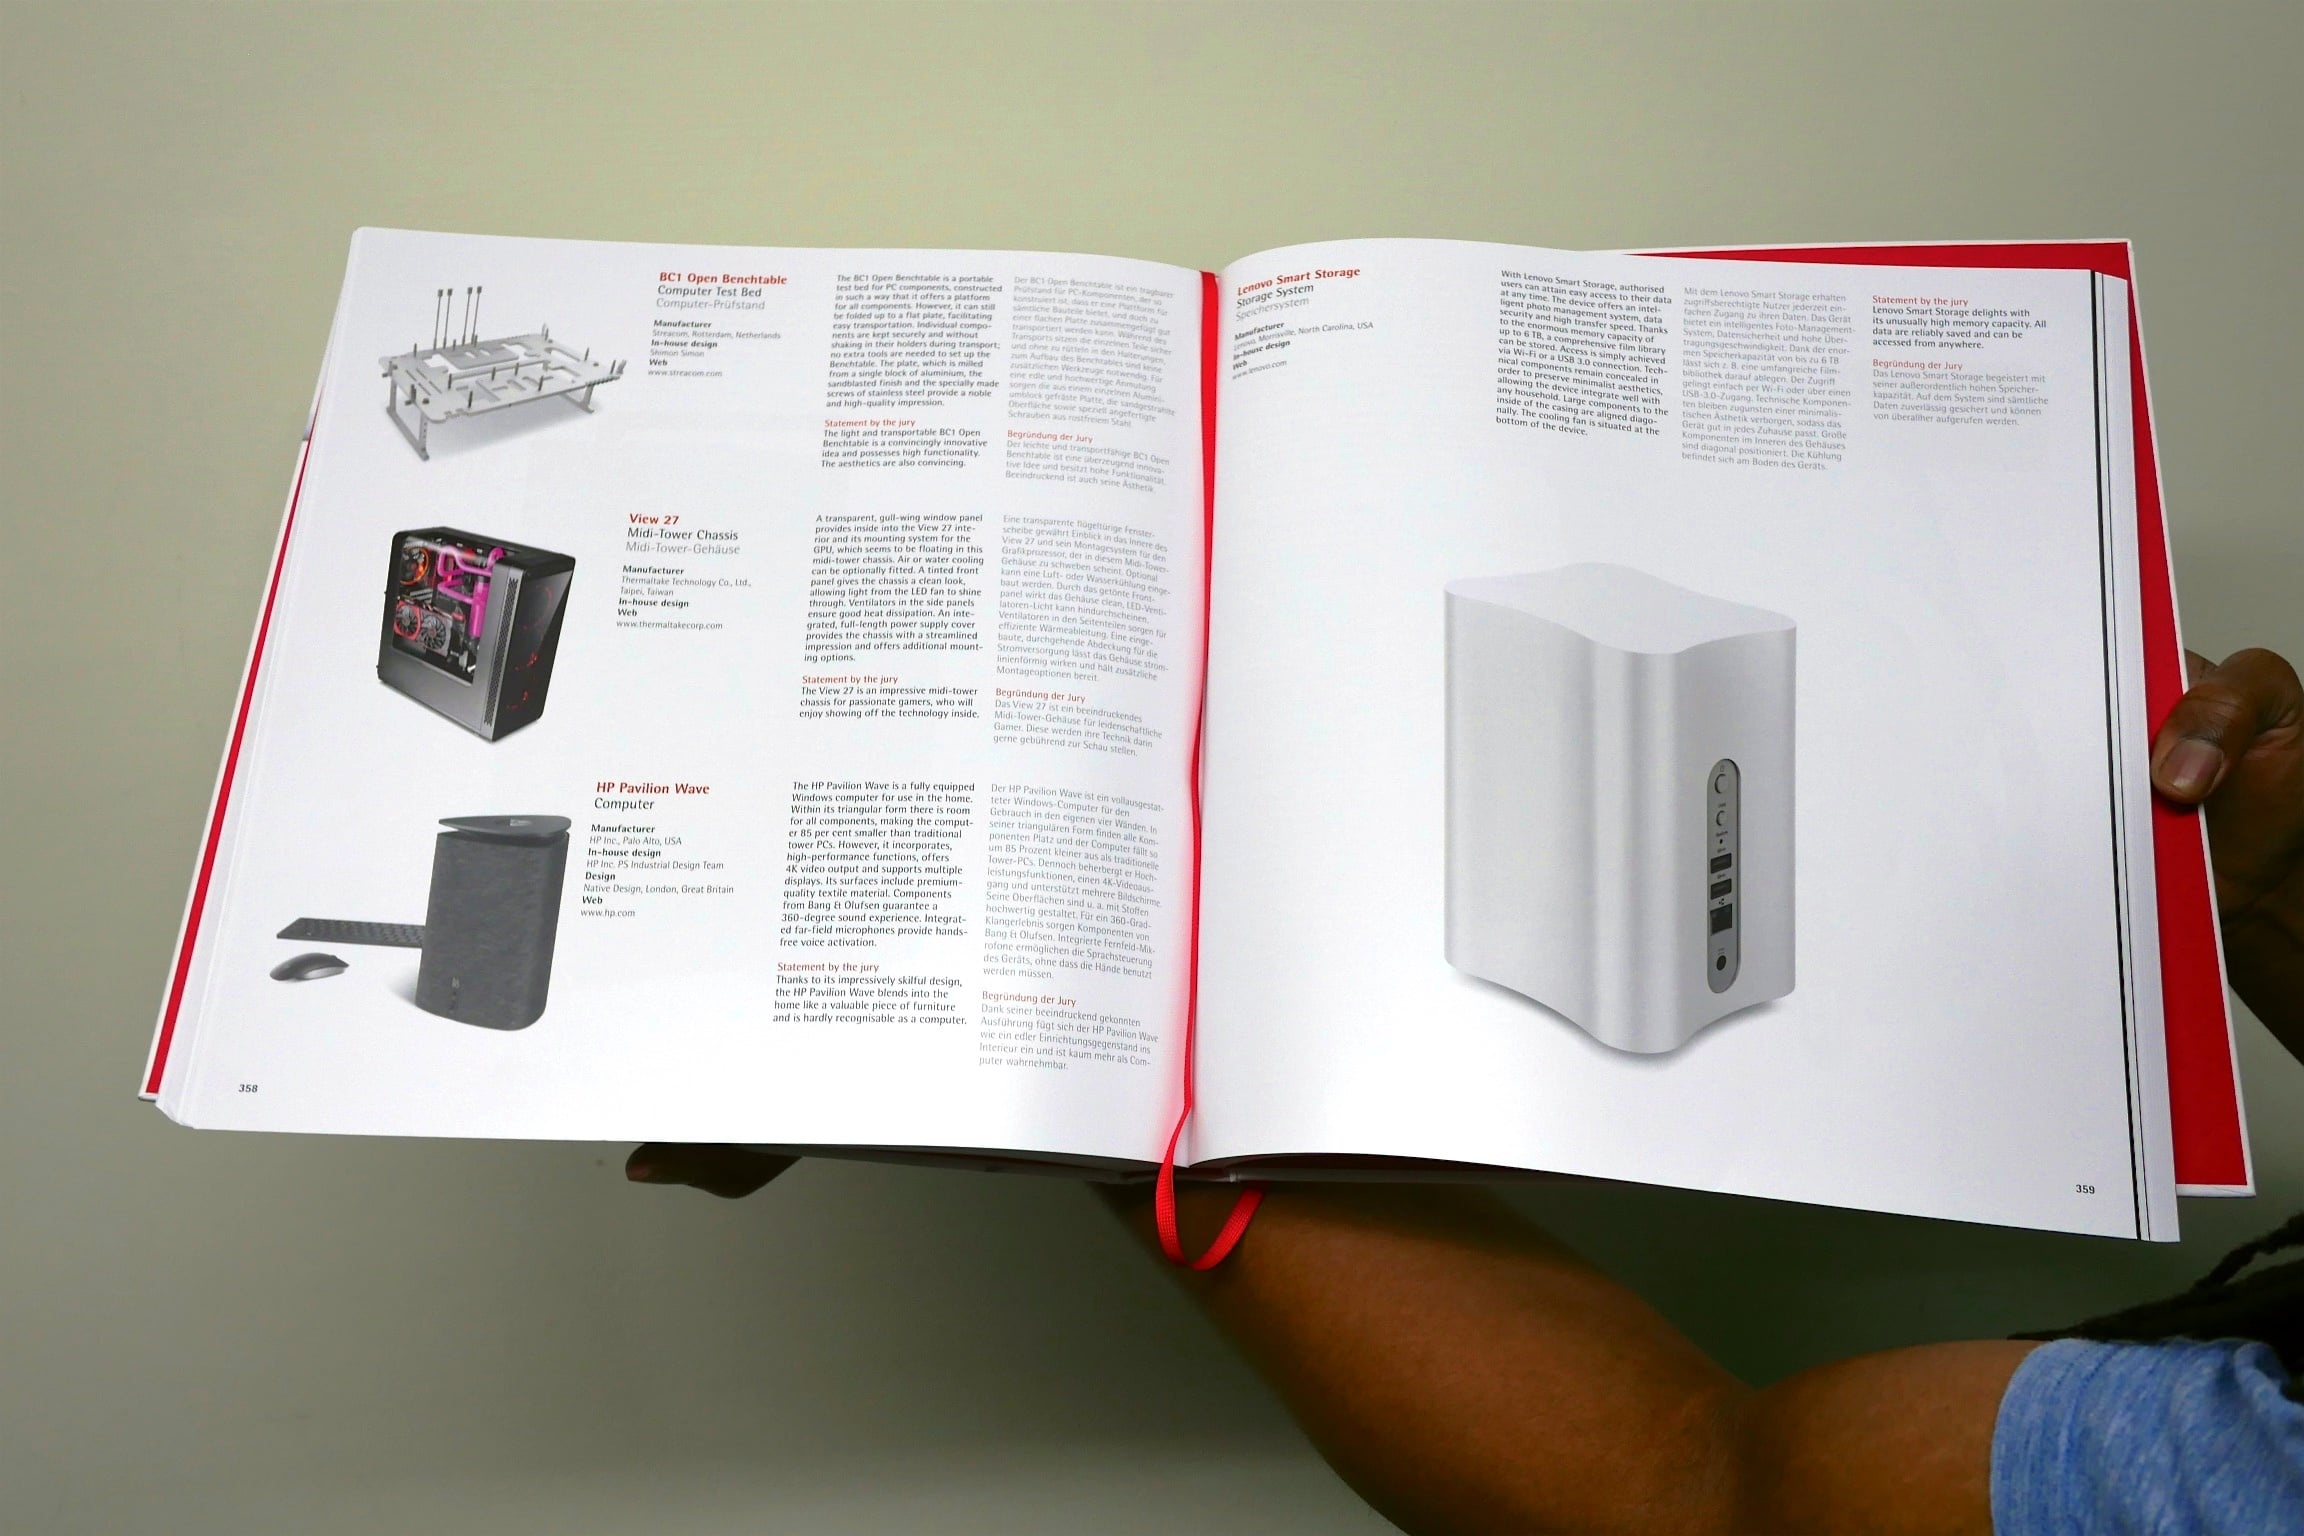 reddot-yearbook-openbenchtable-3